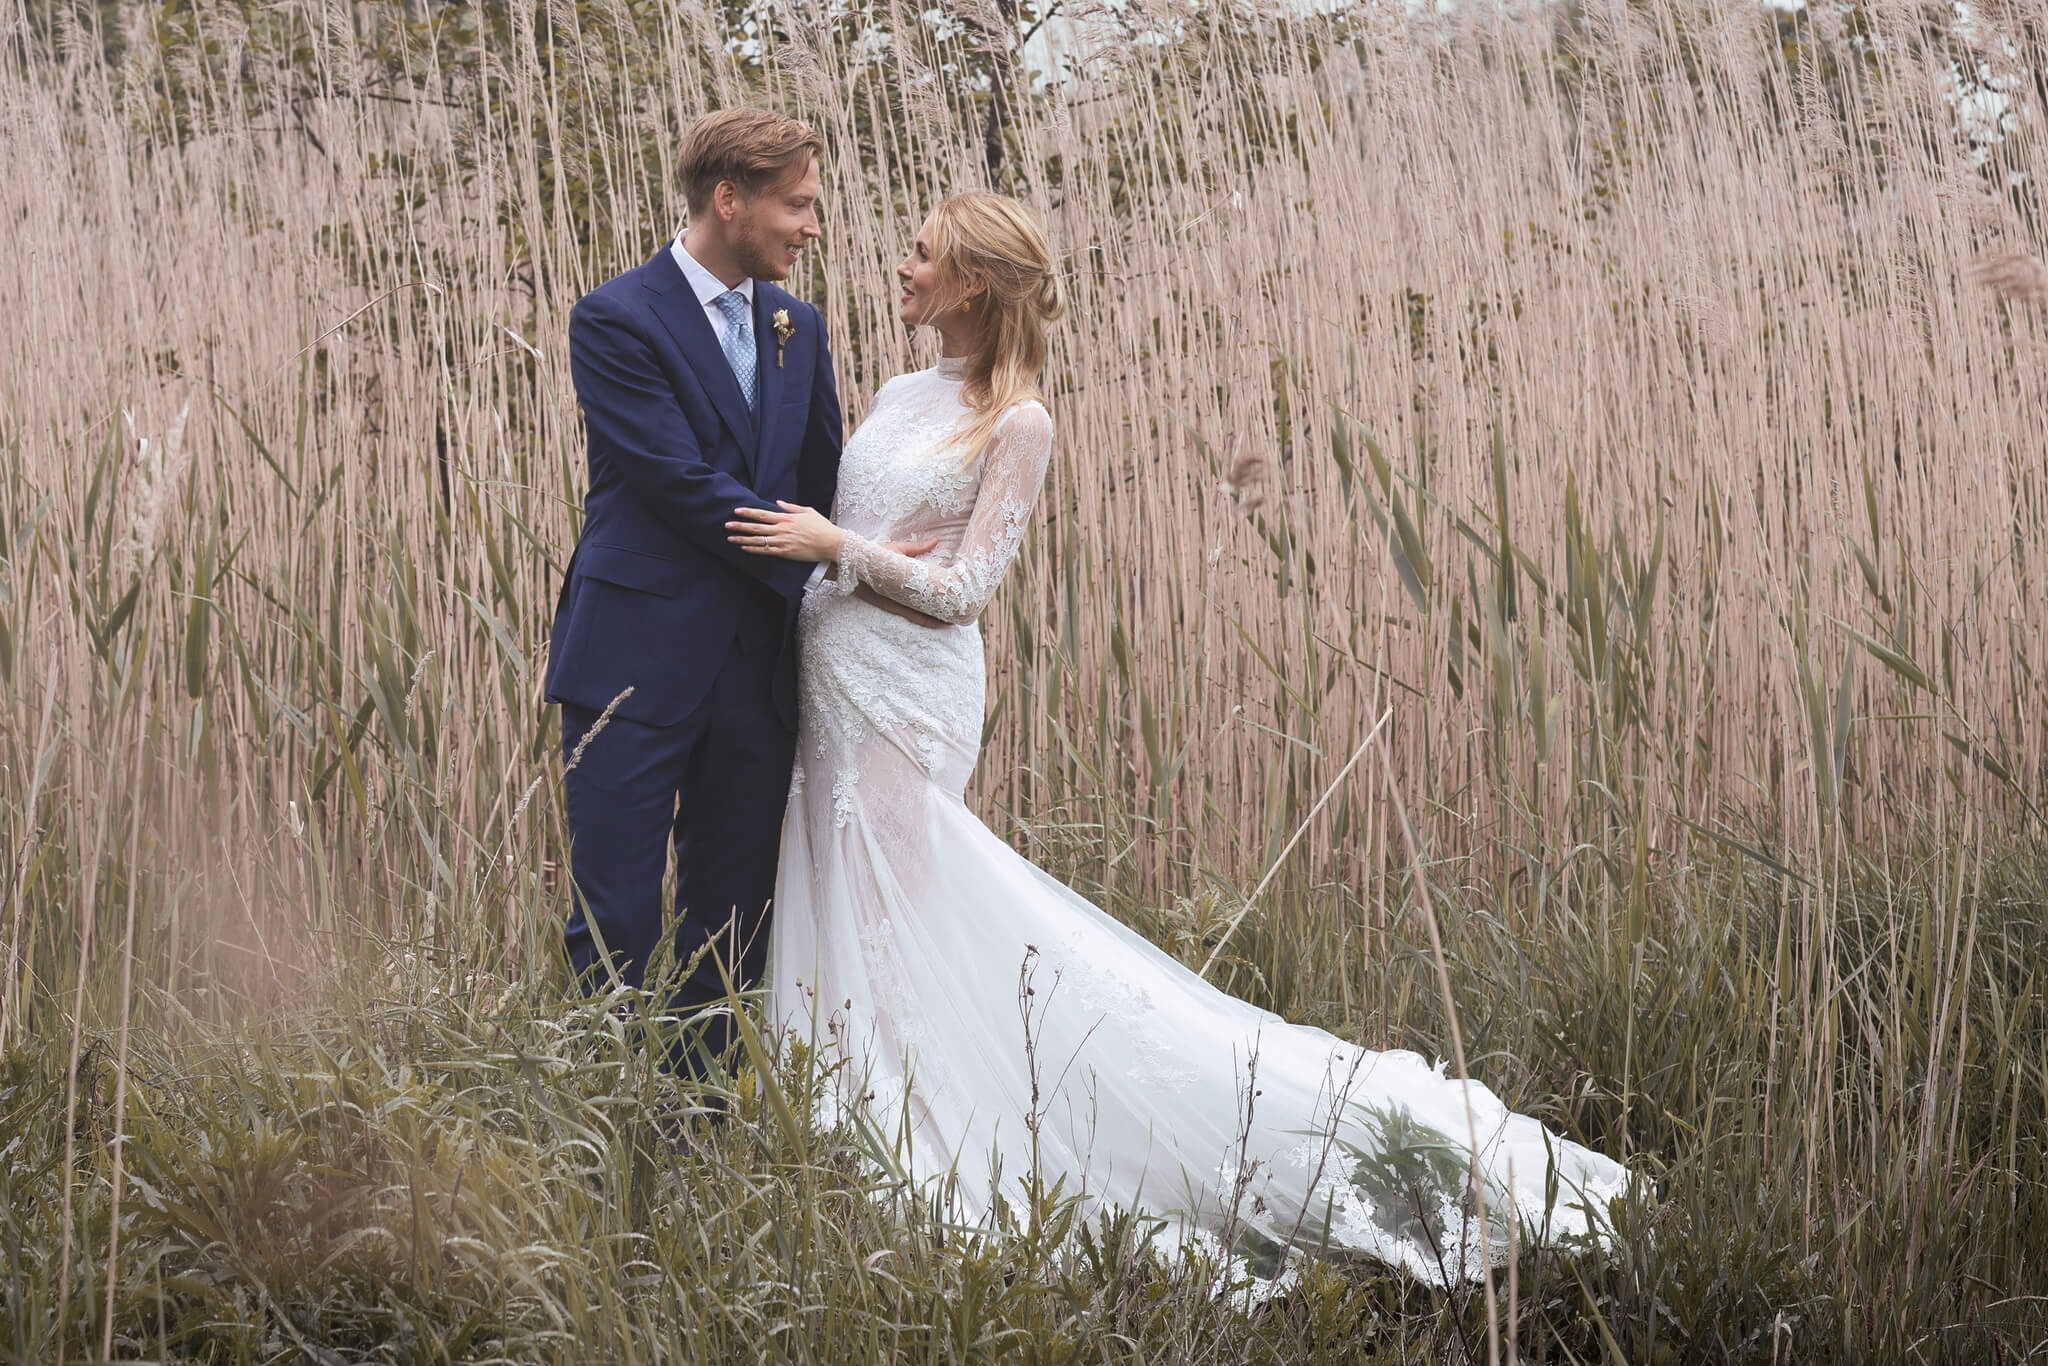 Love is in the Air! Congratulations to this sweet couple